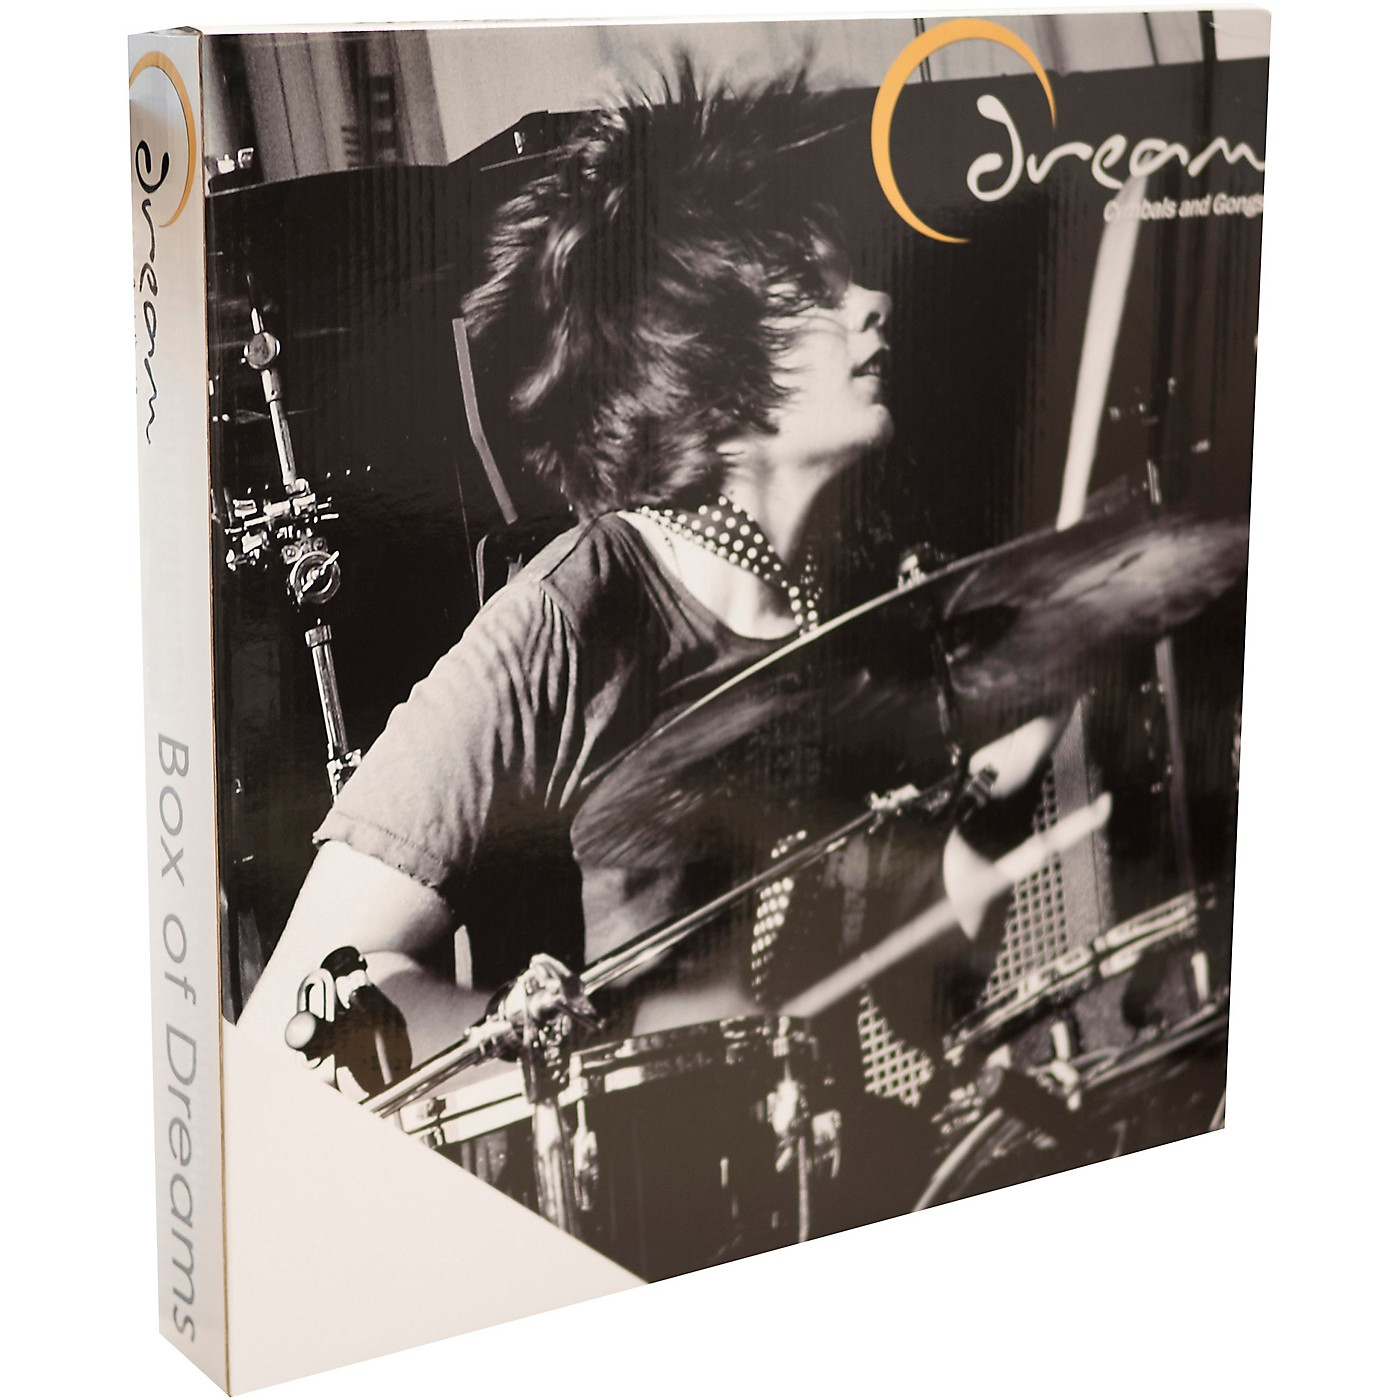 Dream Contact 14/20 Cymbal Pack with Free 10